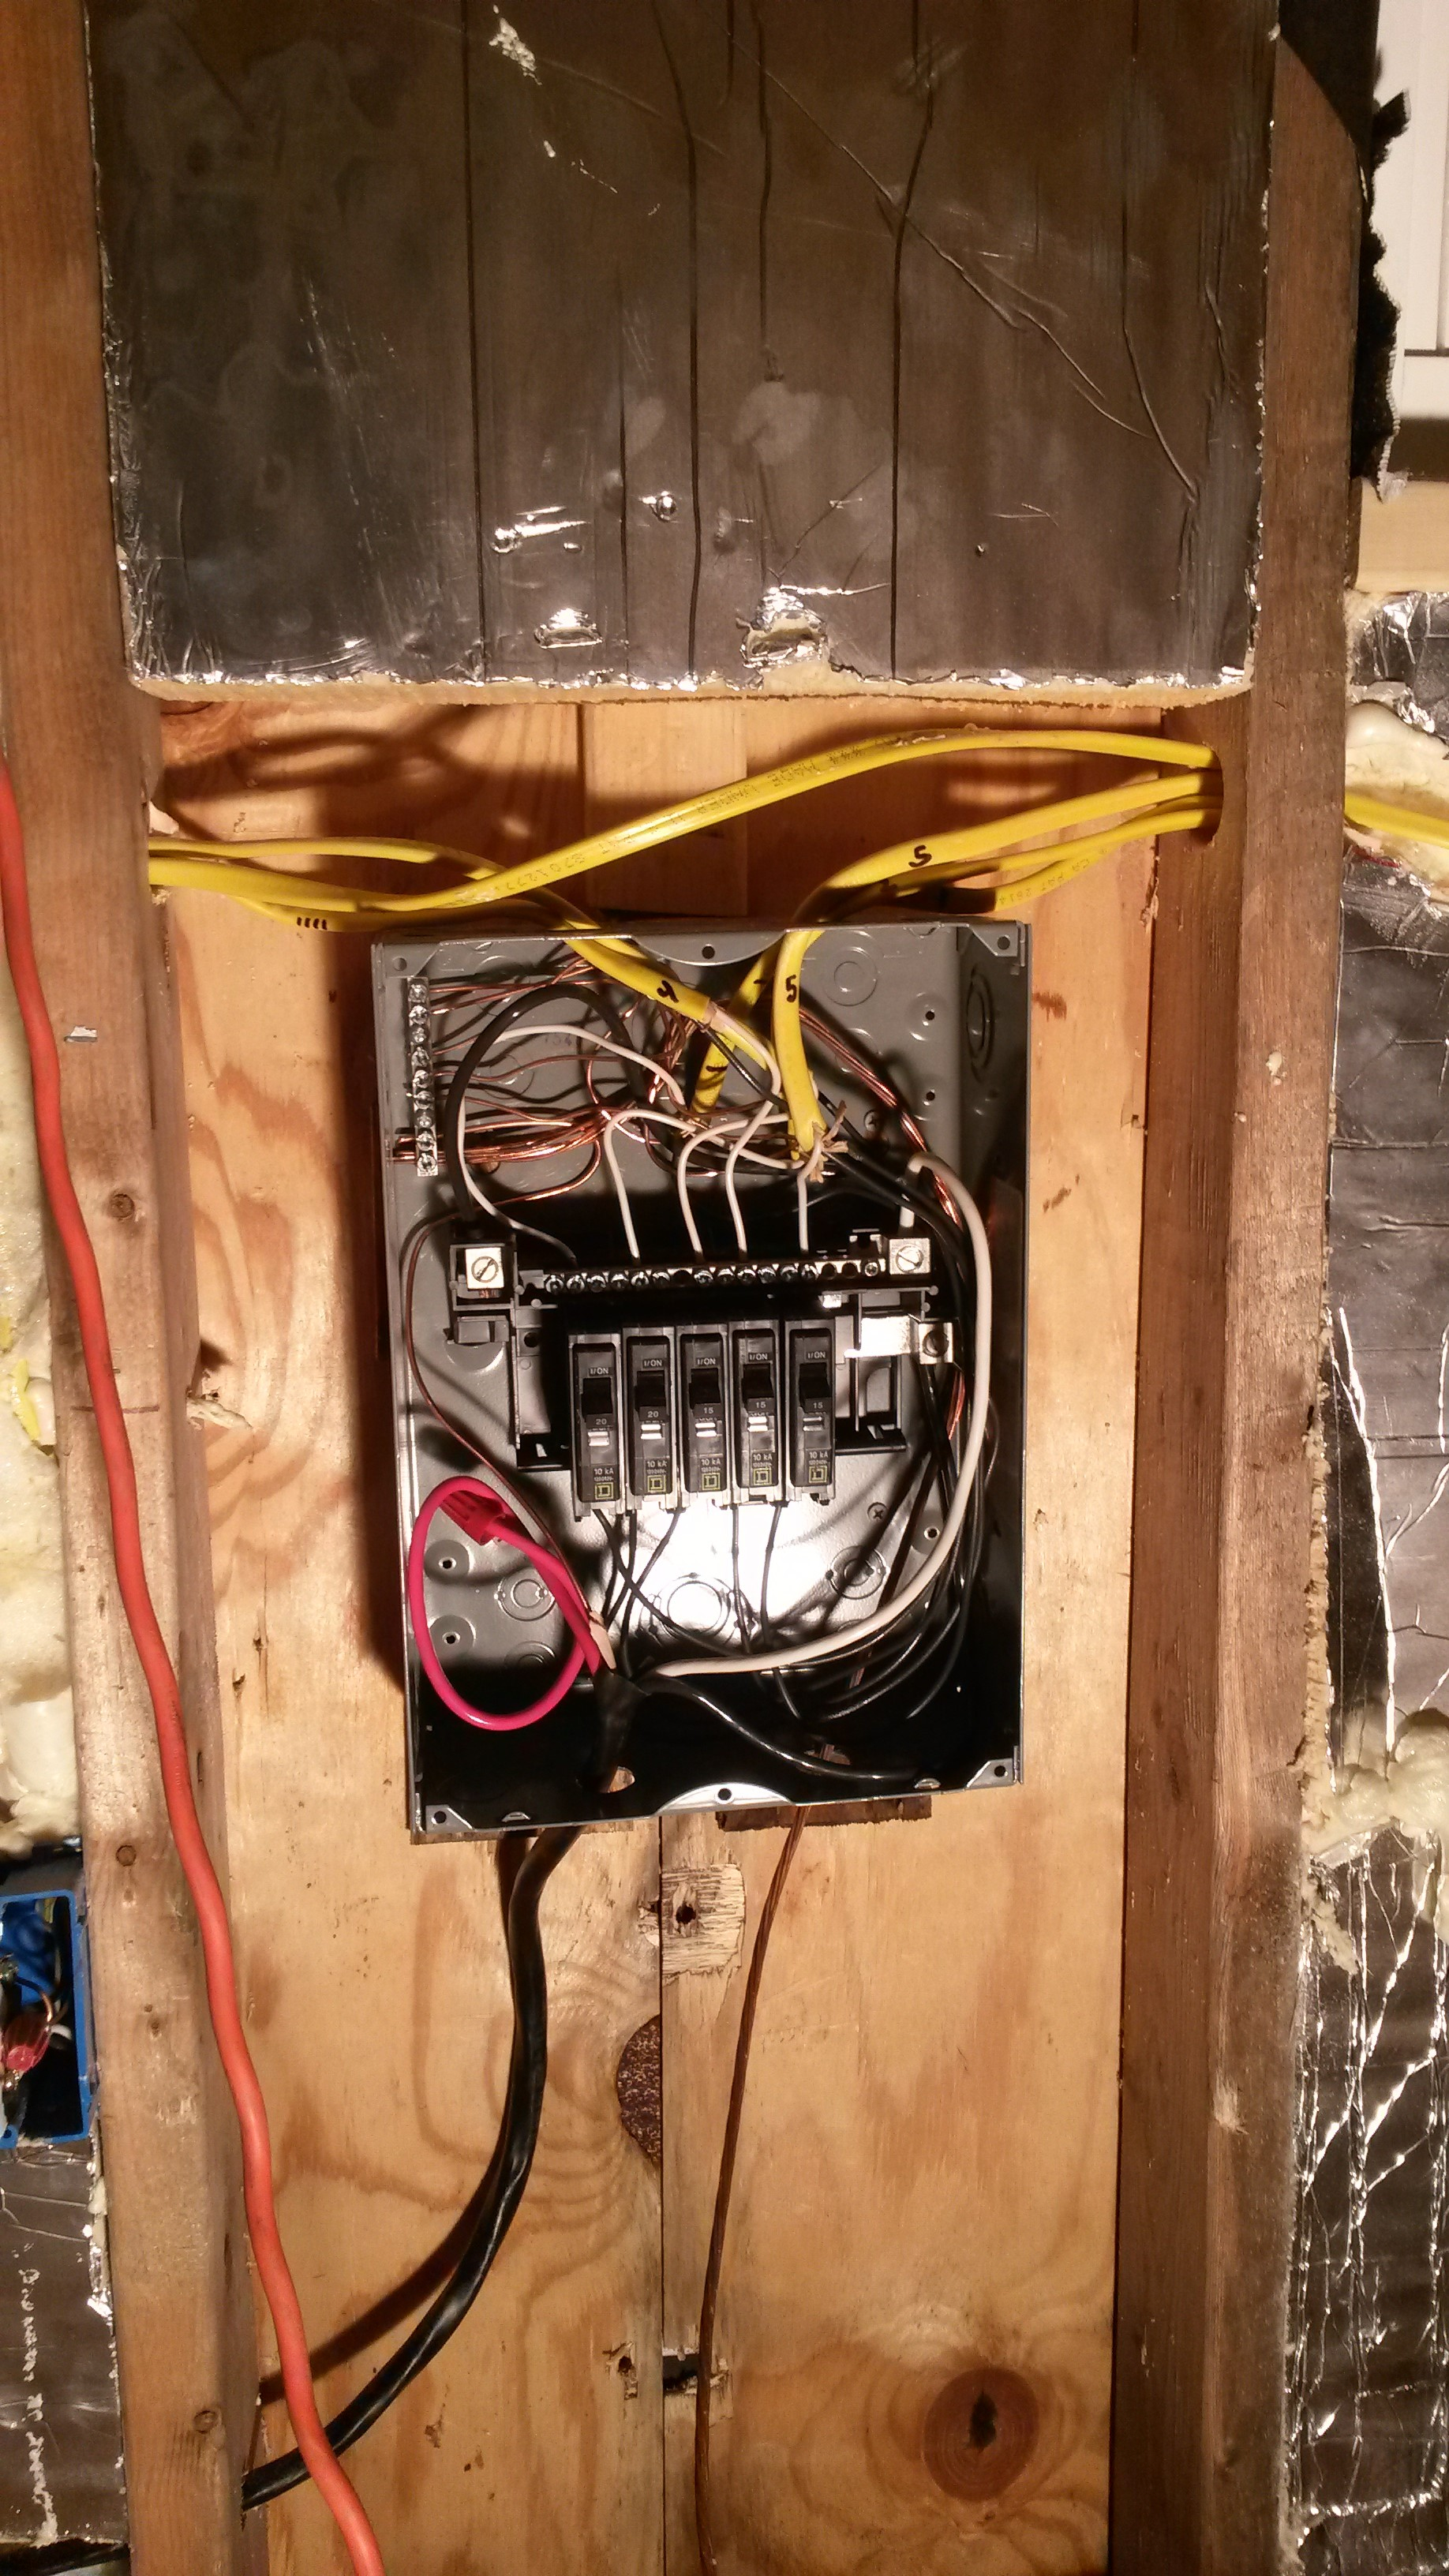 Wicked Tiny House Electrical System Overview Part 1 Home Wiring How To Extend An Circuit Breaker Box